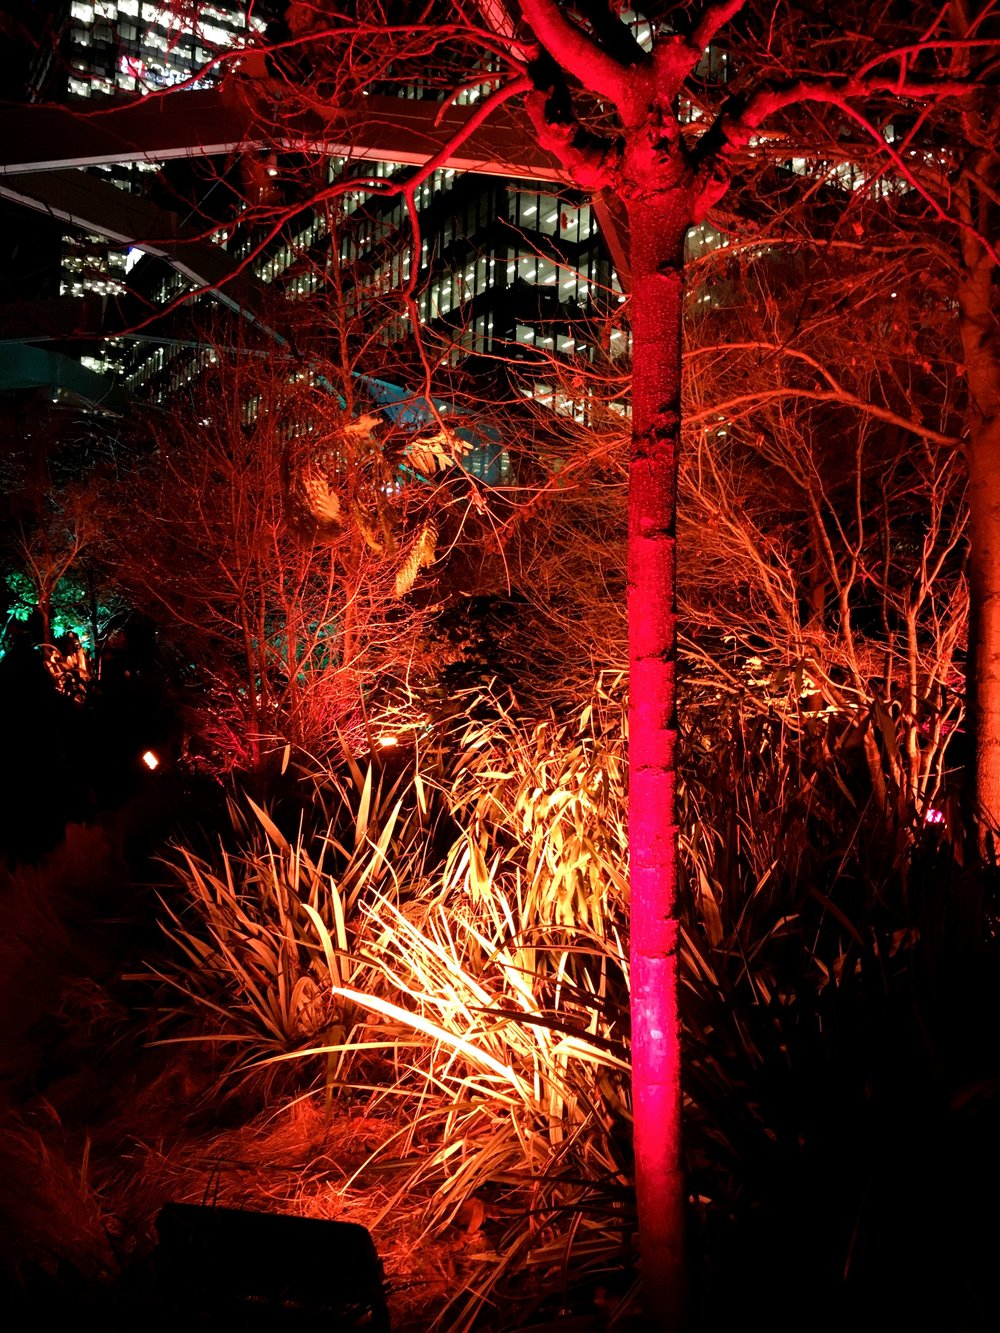 red and orange illuminated trees in the Crossrail Place roof garden in Canary Wharf